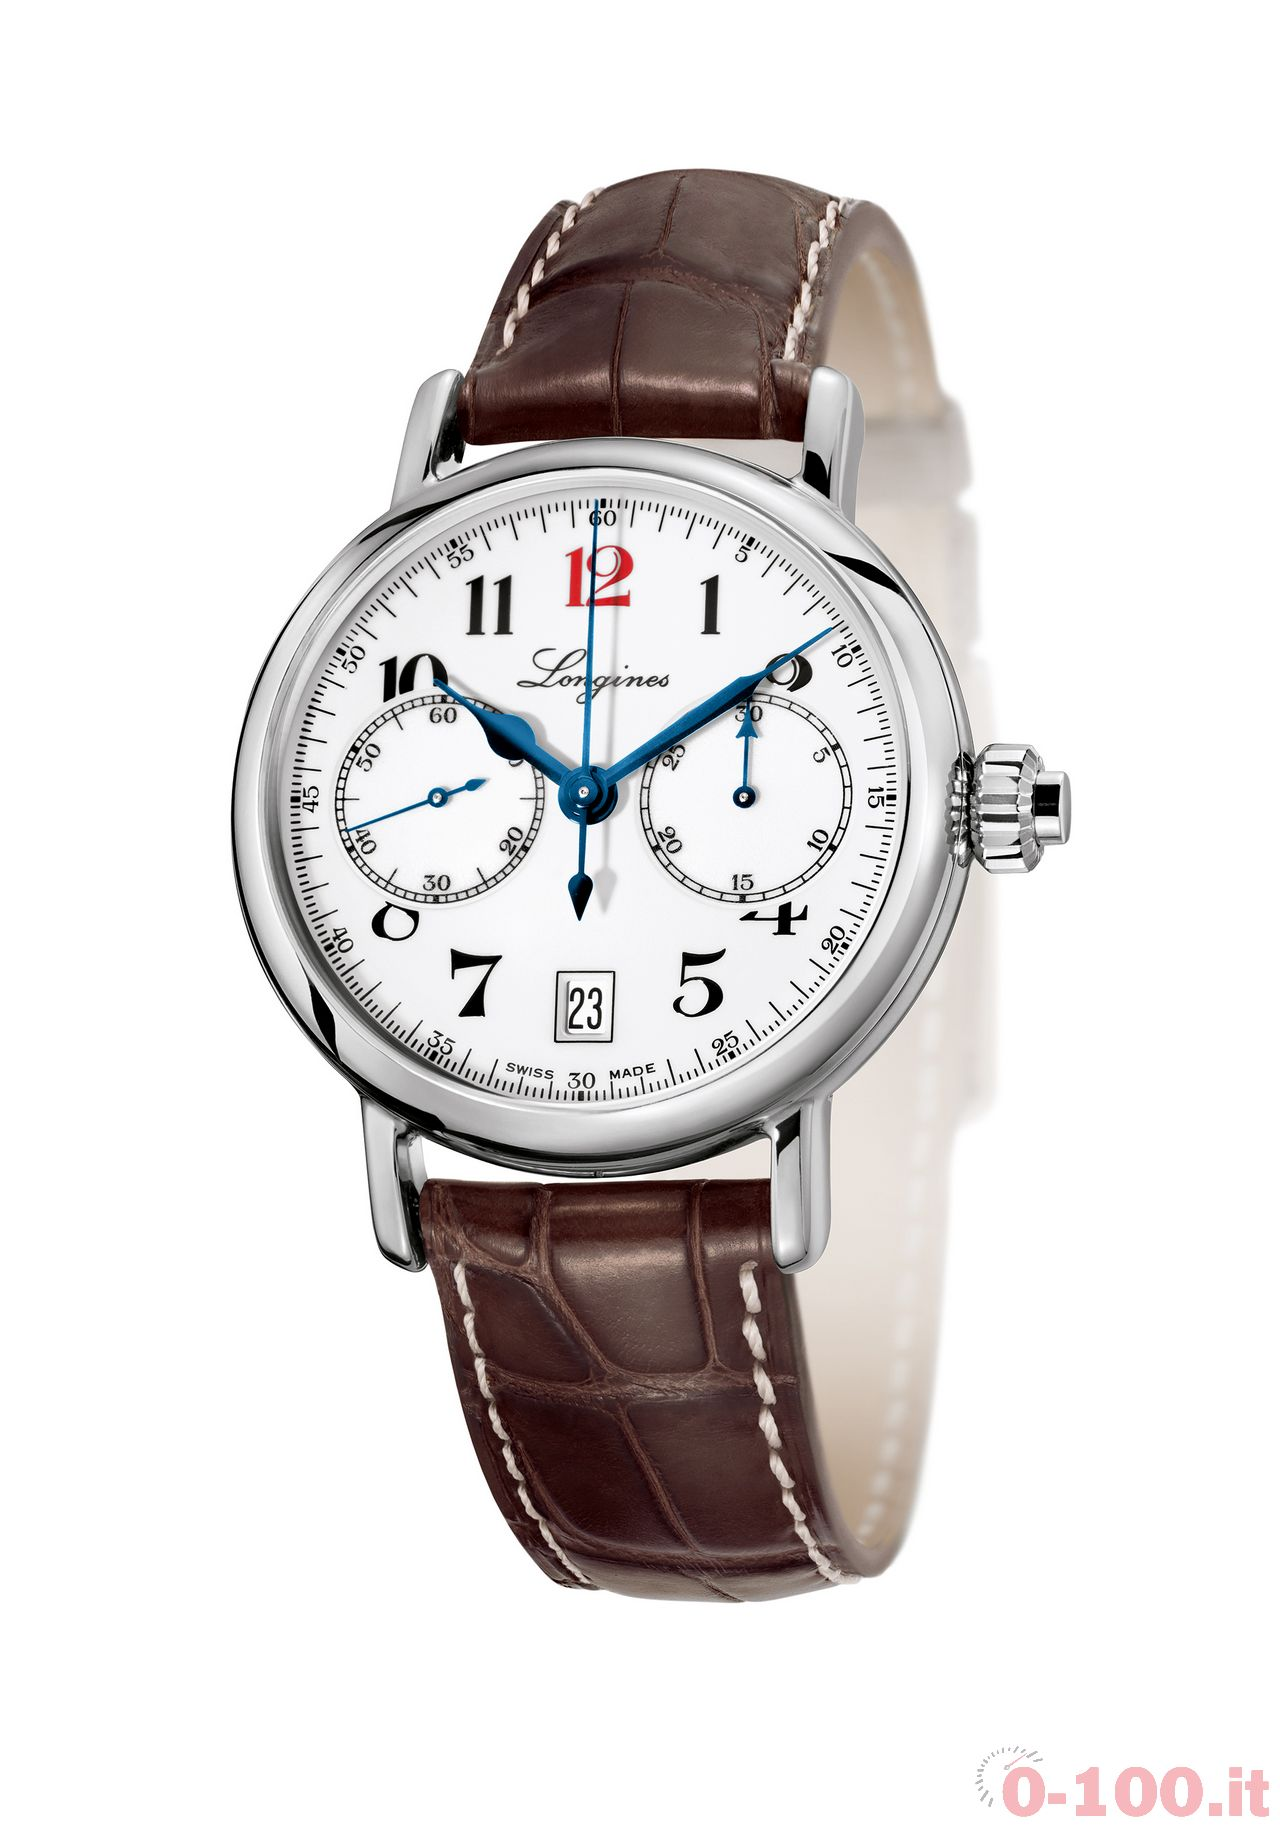 Longines Column-Wheel-Single-Push-Piece-Chronograph-0-100_14